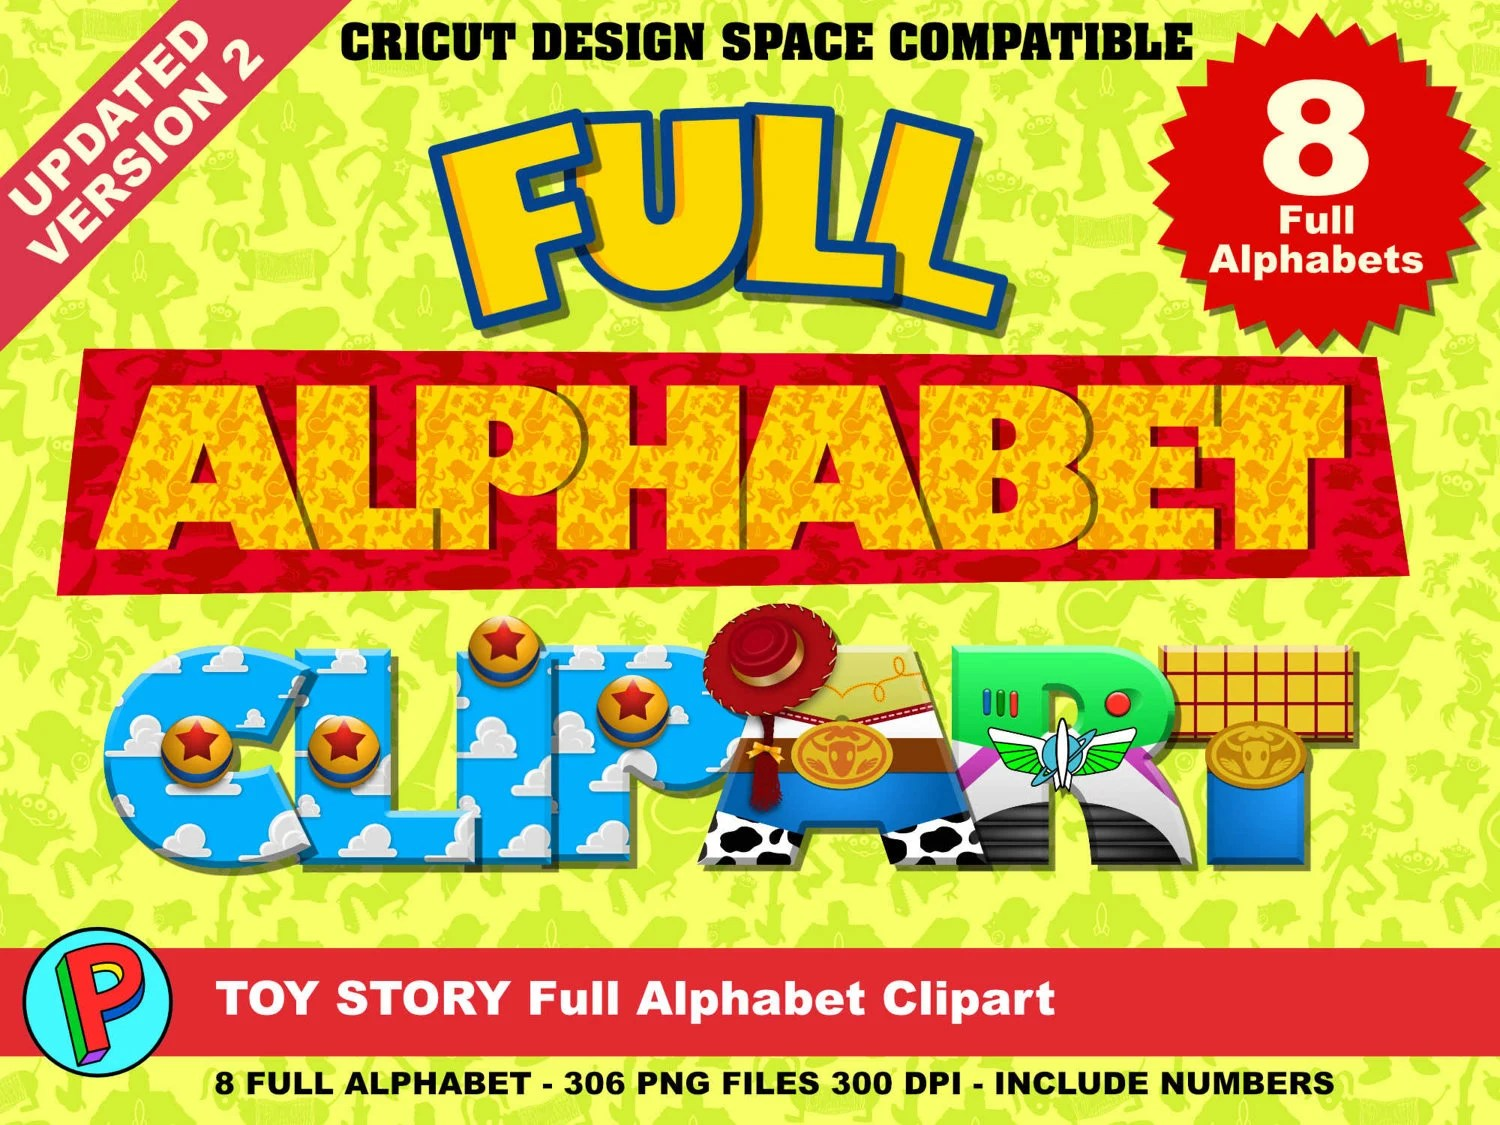 Toy Story Full Alphabet Clipart 8 Alphabets 8 Designs